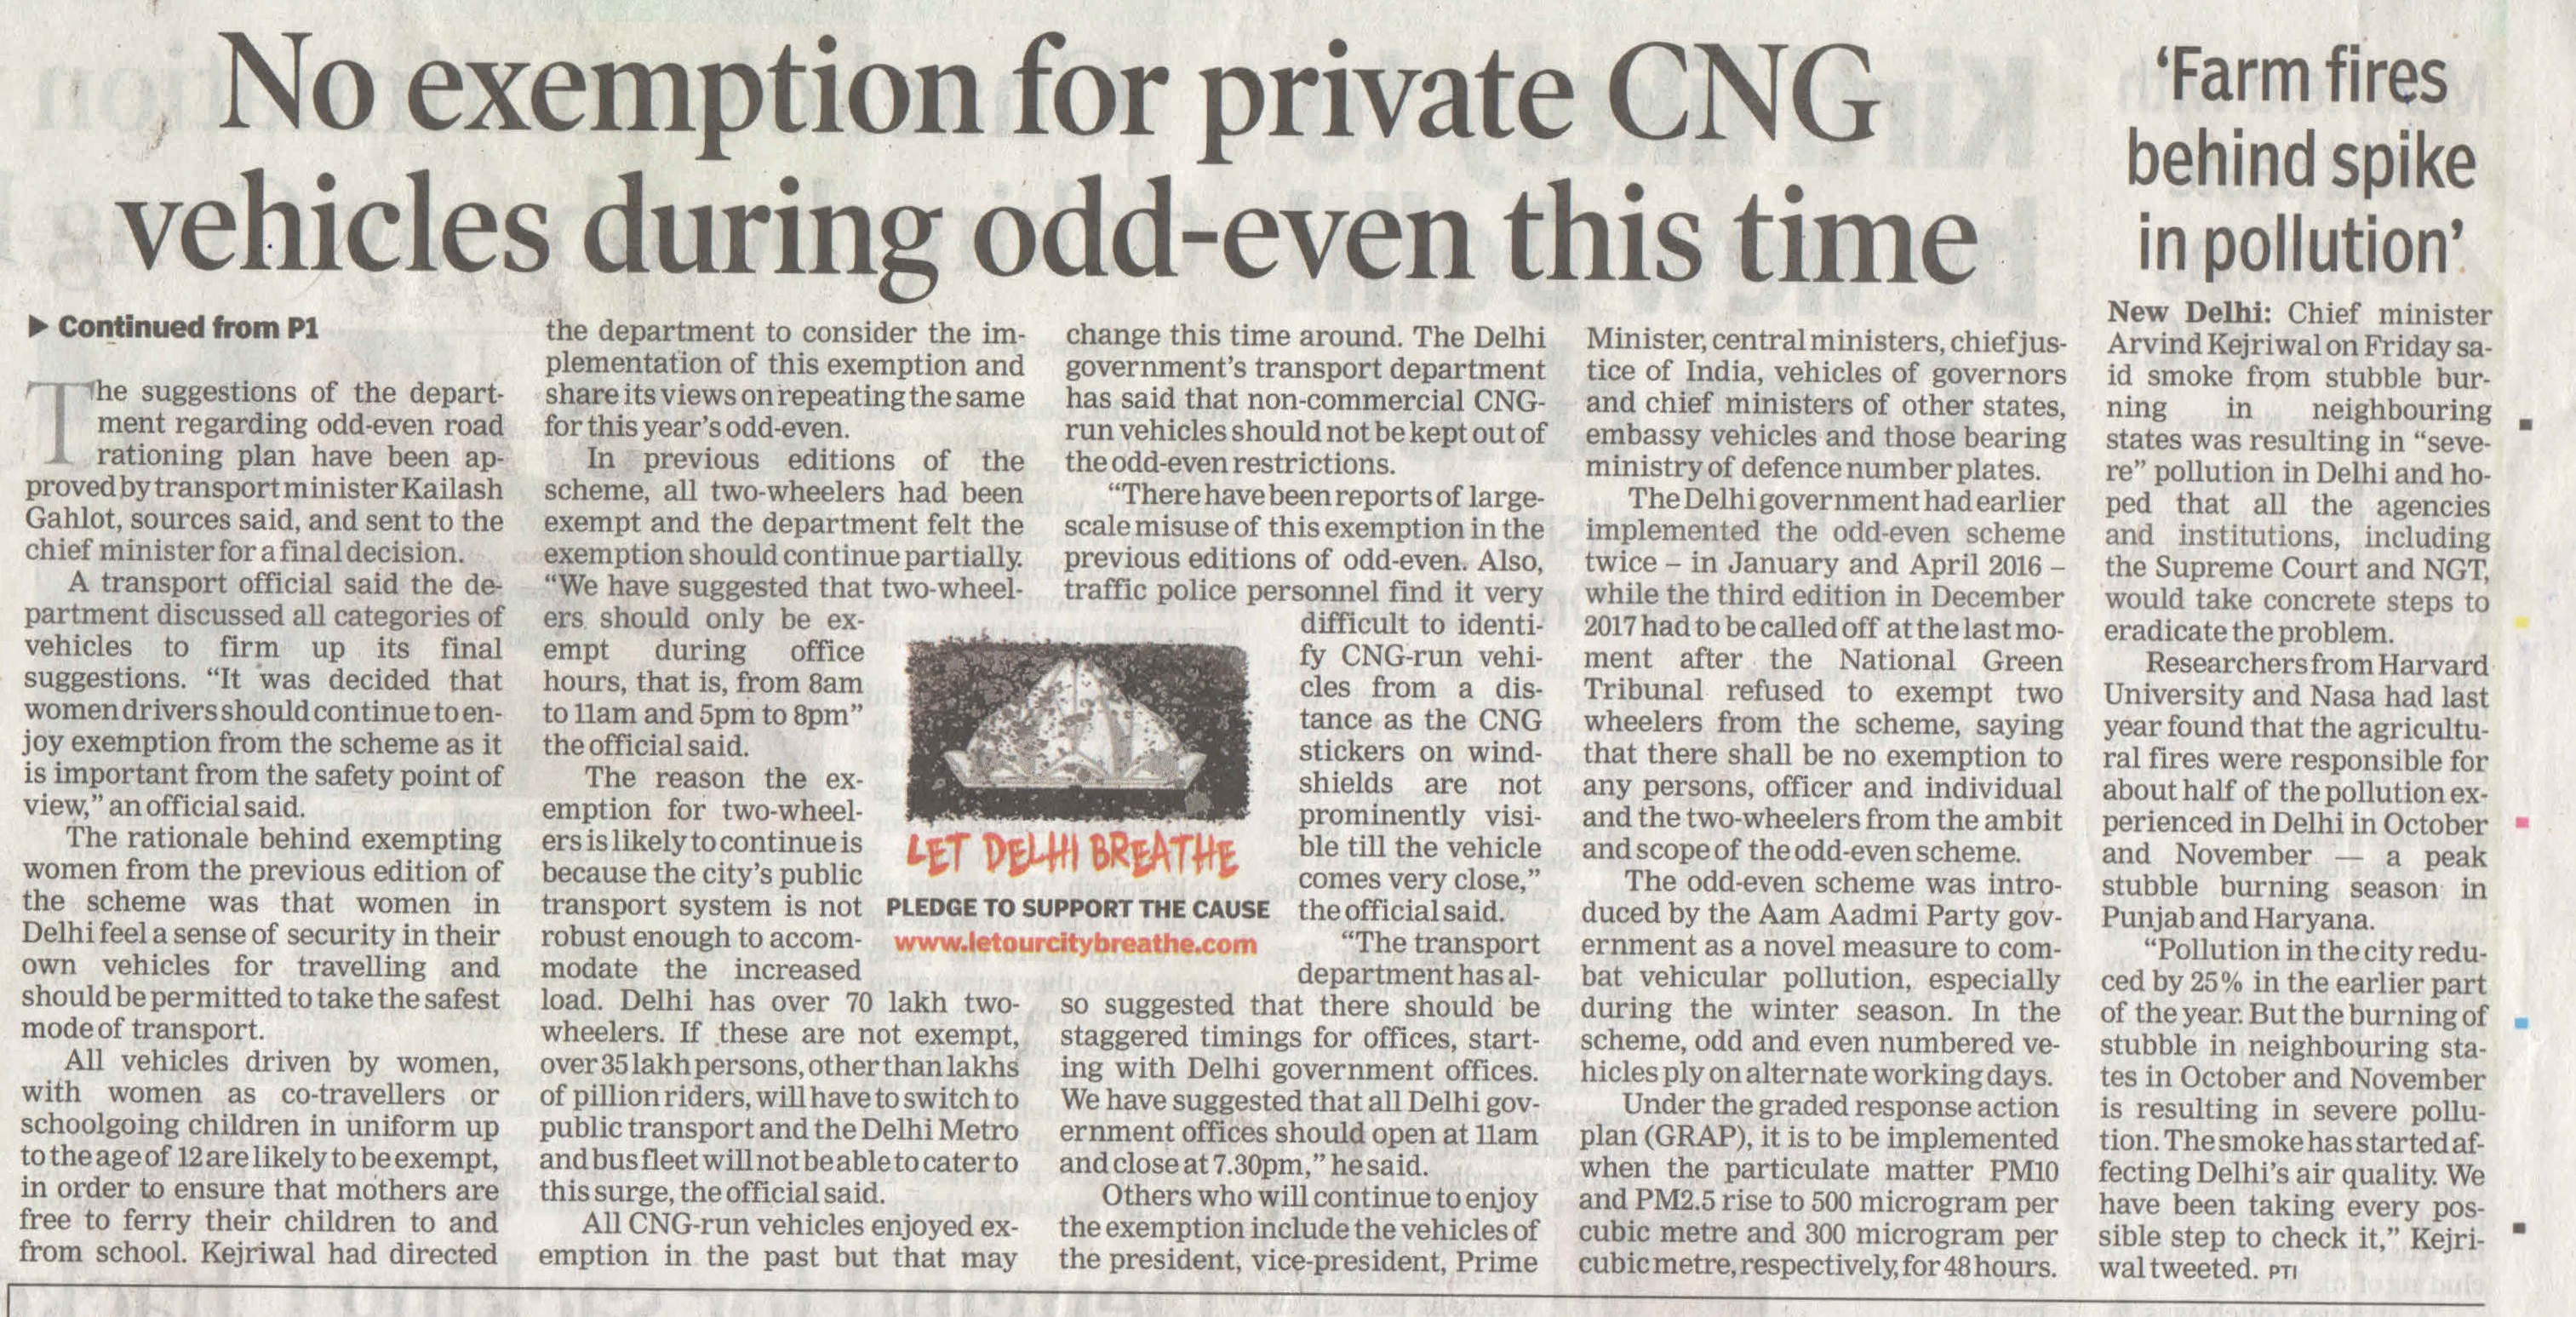 No exemption for private CNG vehicles during odd-eve this time